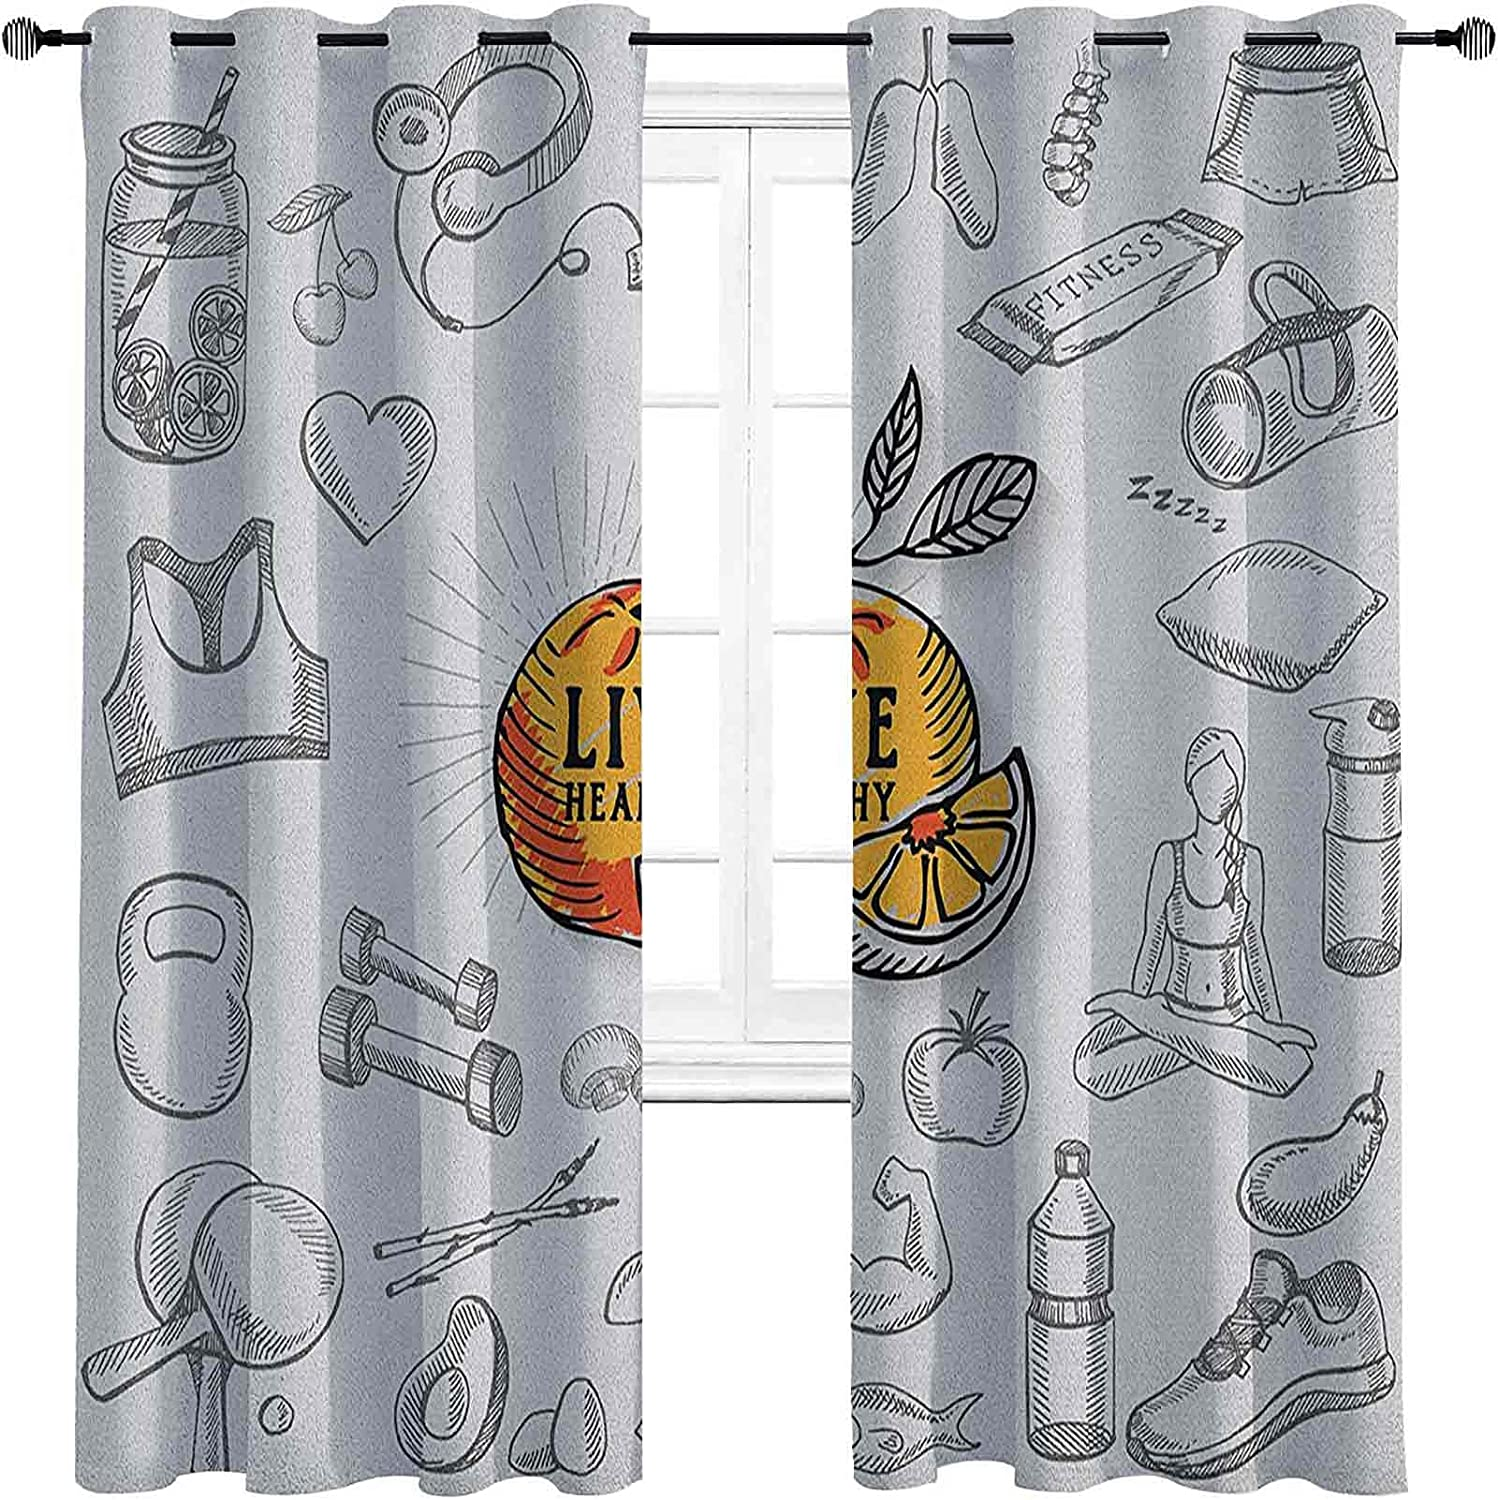 Fitness Blackout Curtains Cash special price National products - Gasket Live Them Healthy Insulation